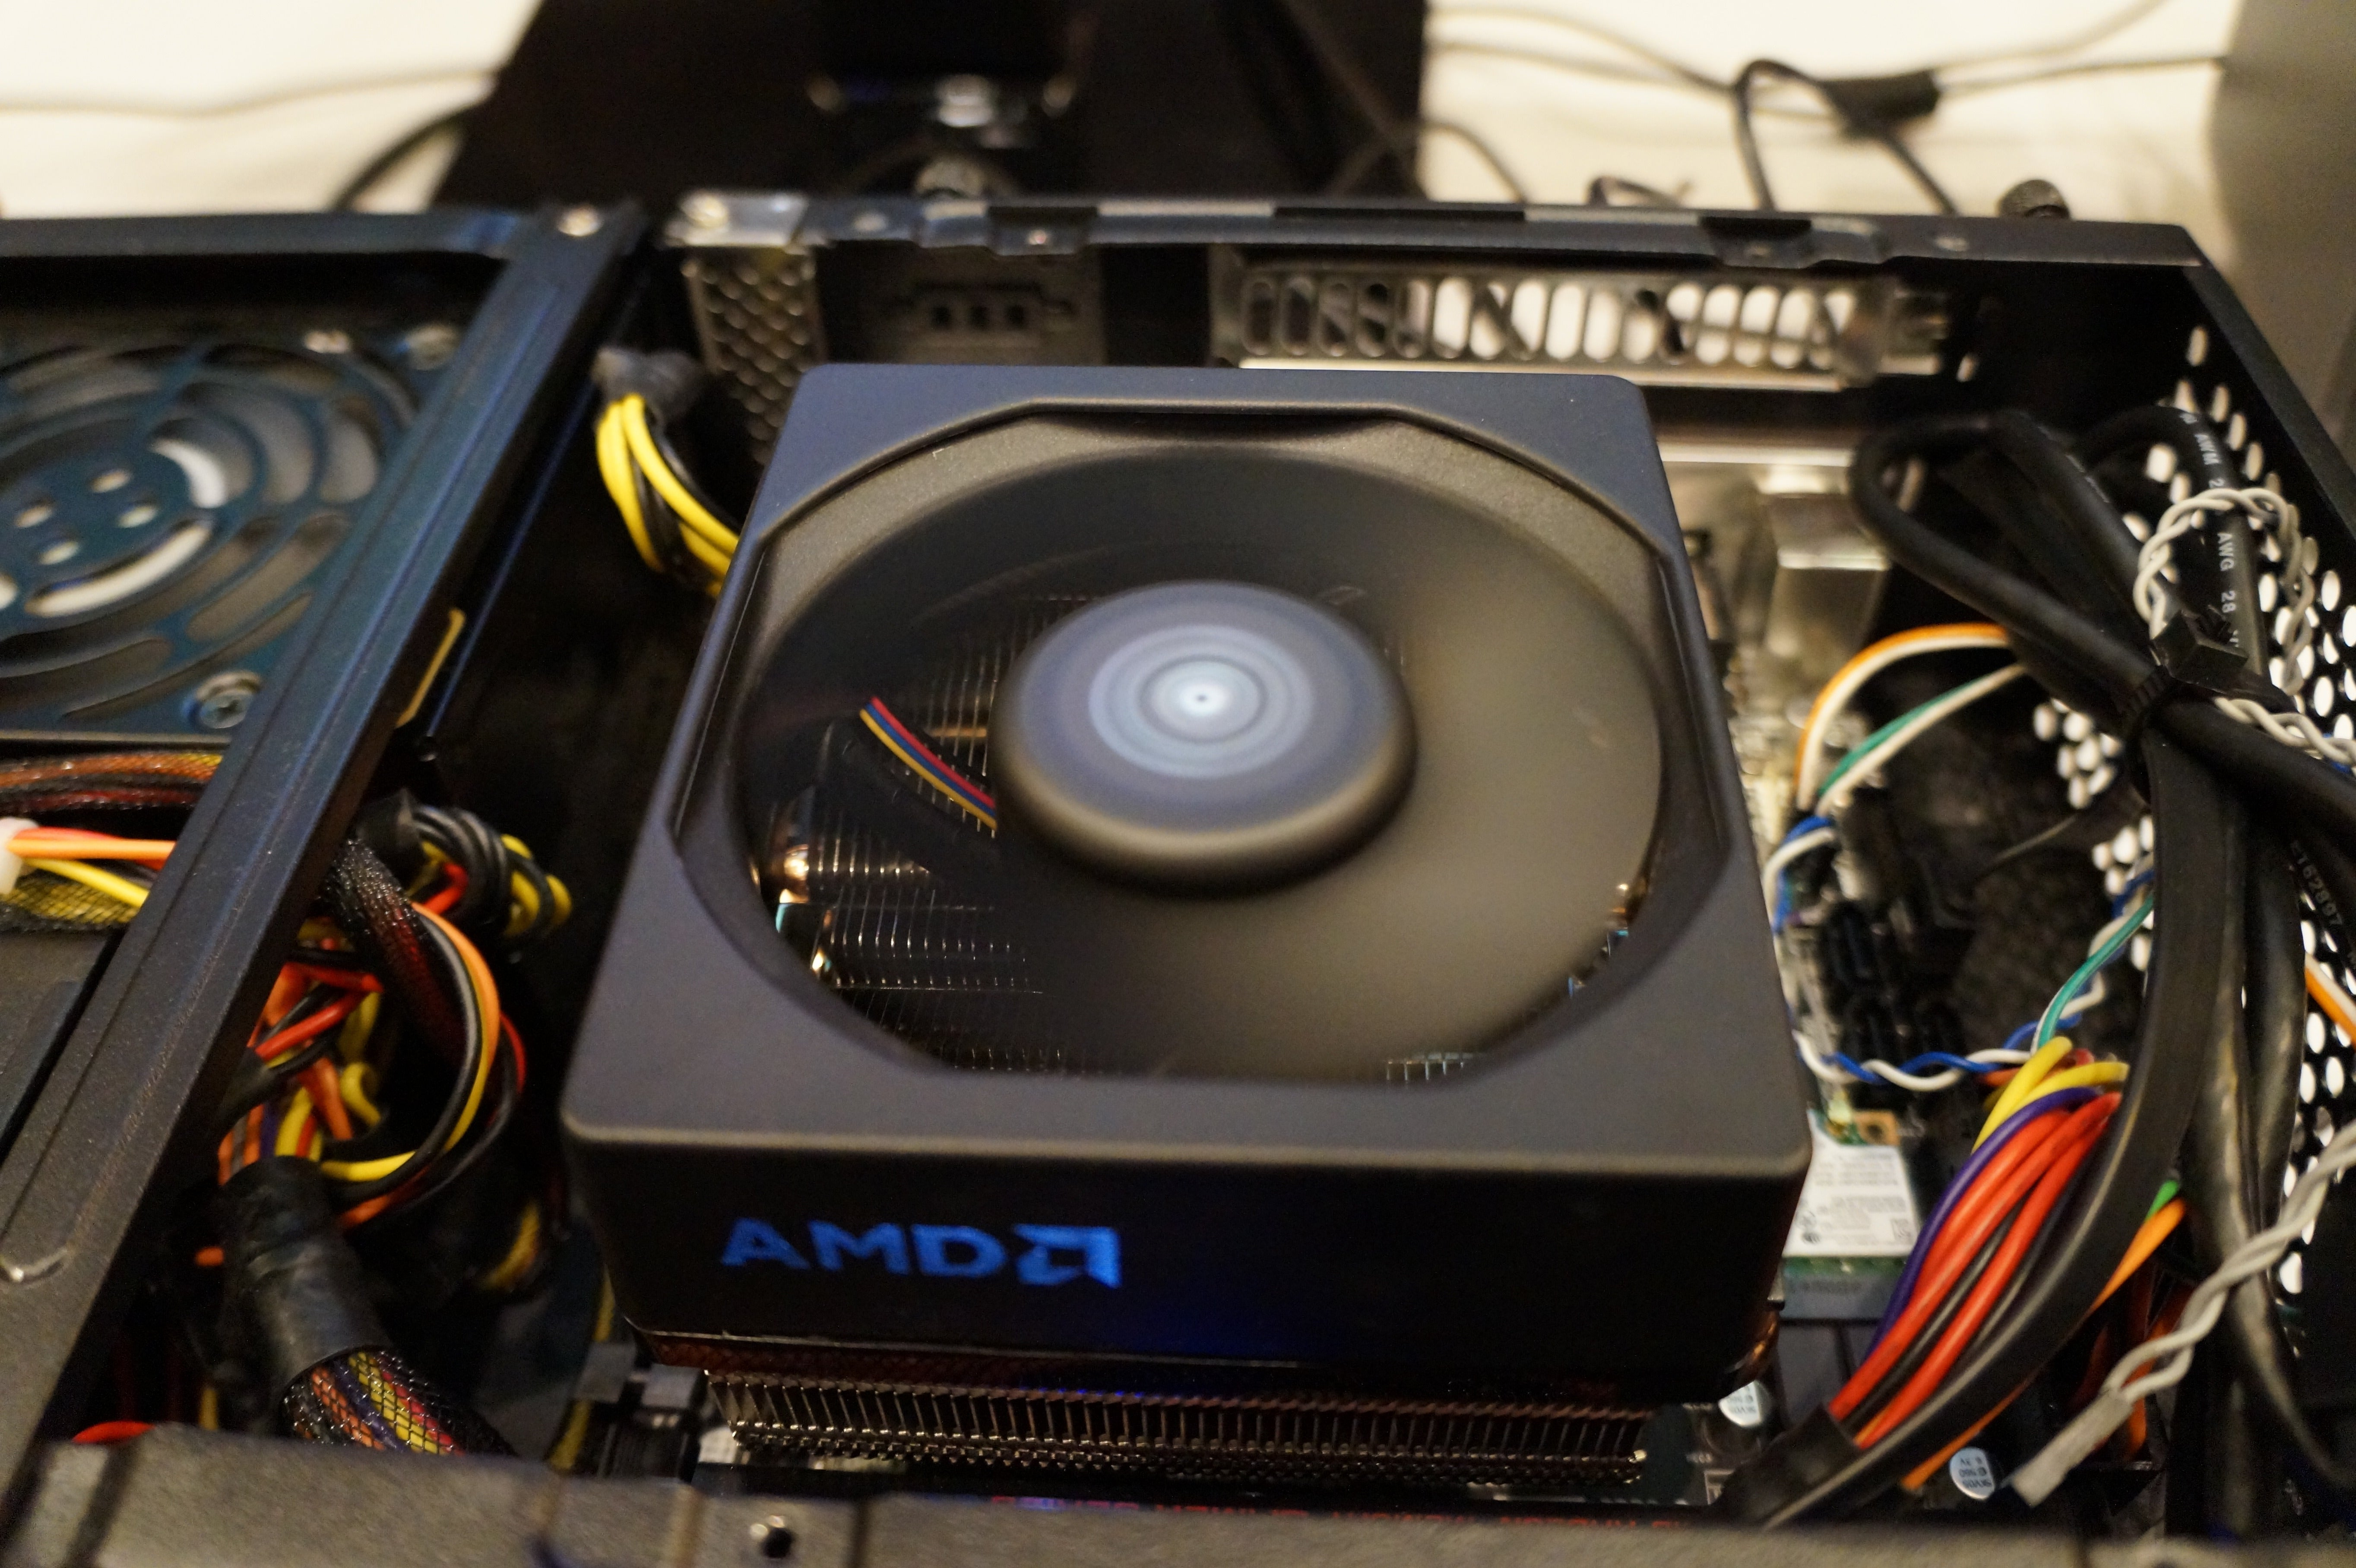 AMD Demos New Reference CPU Cooler